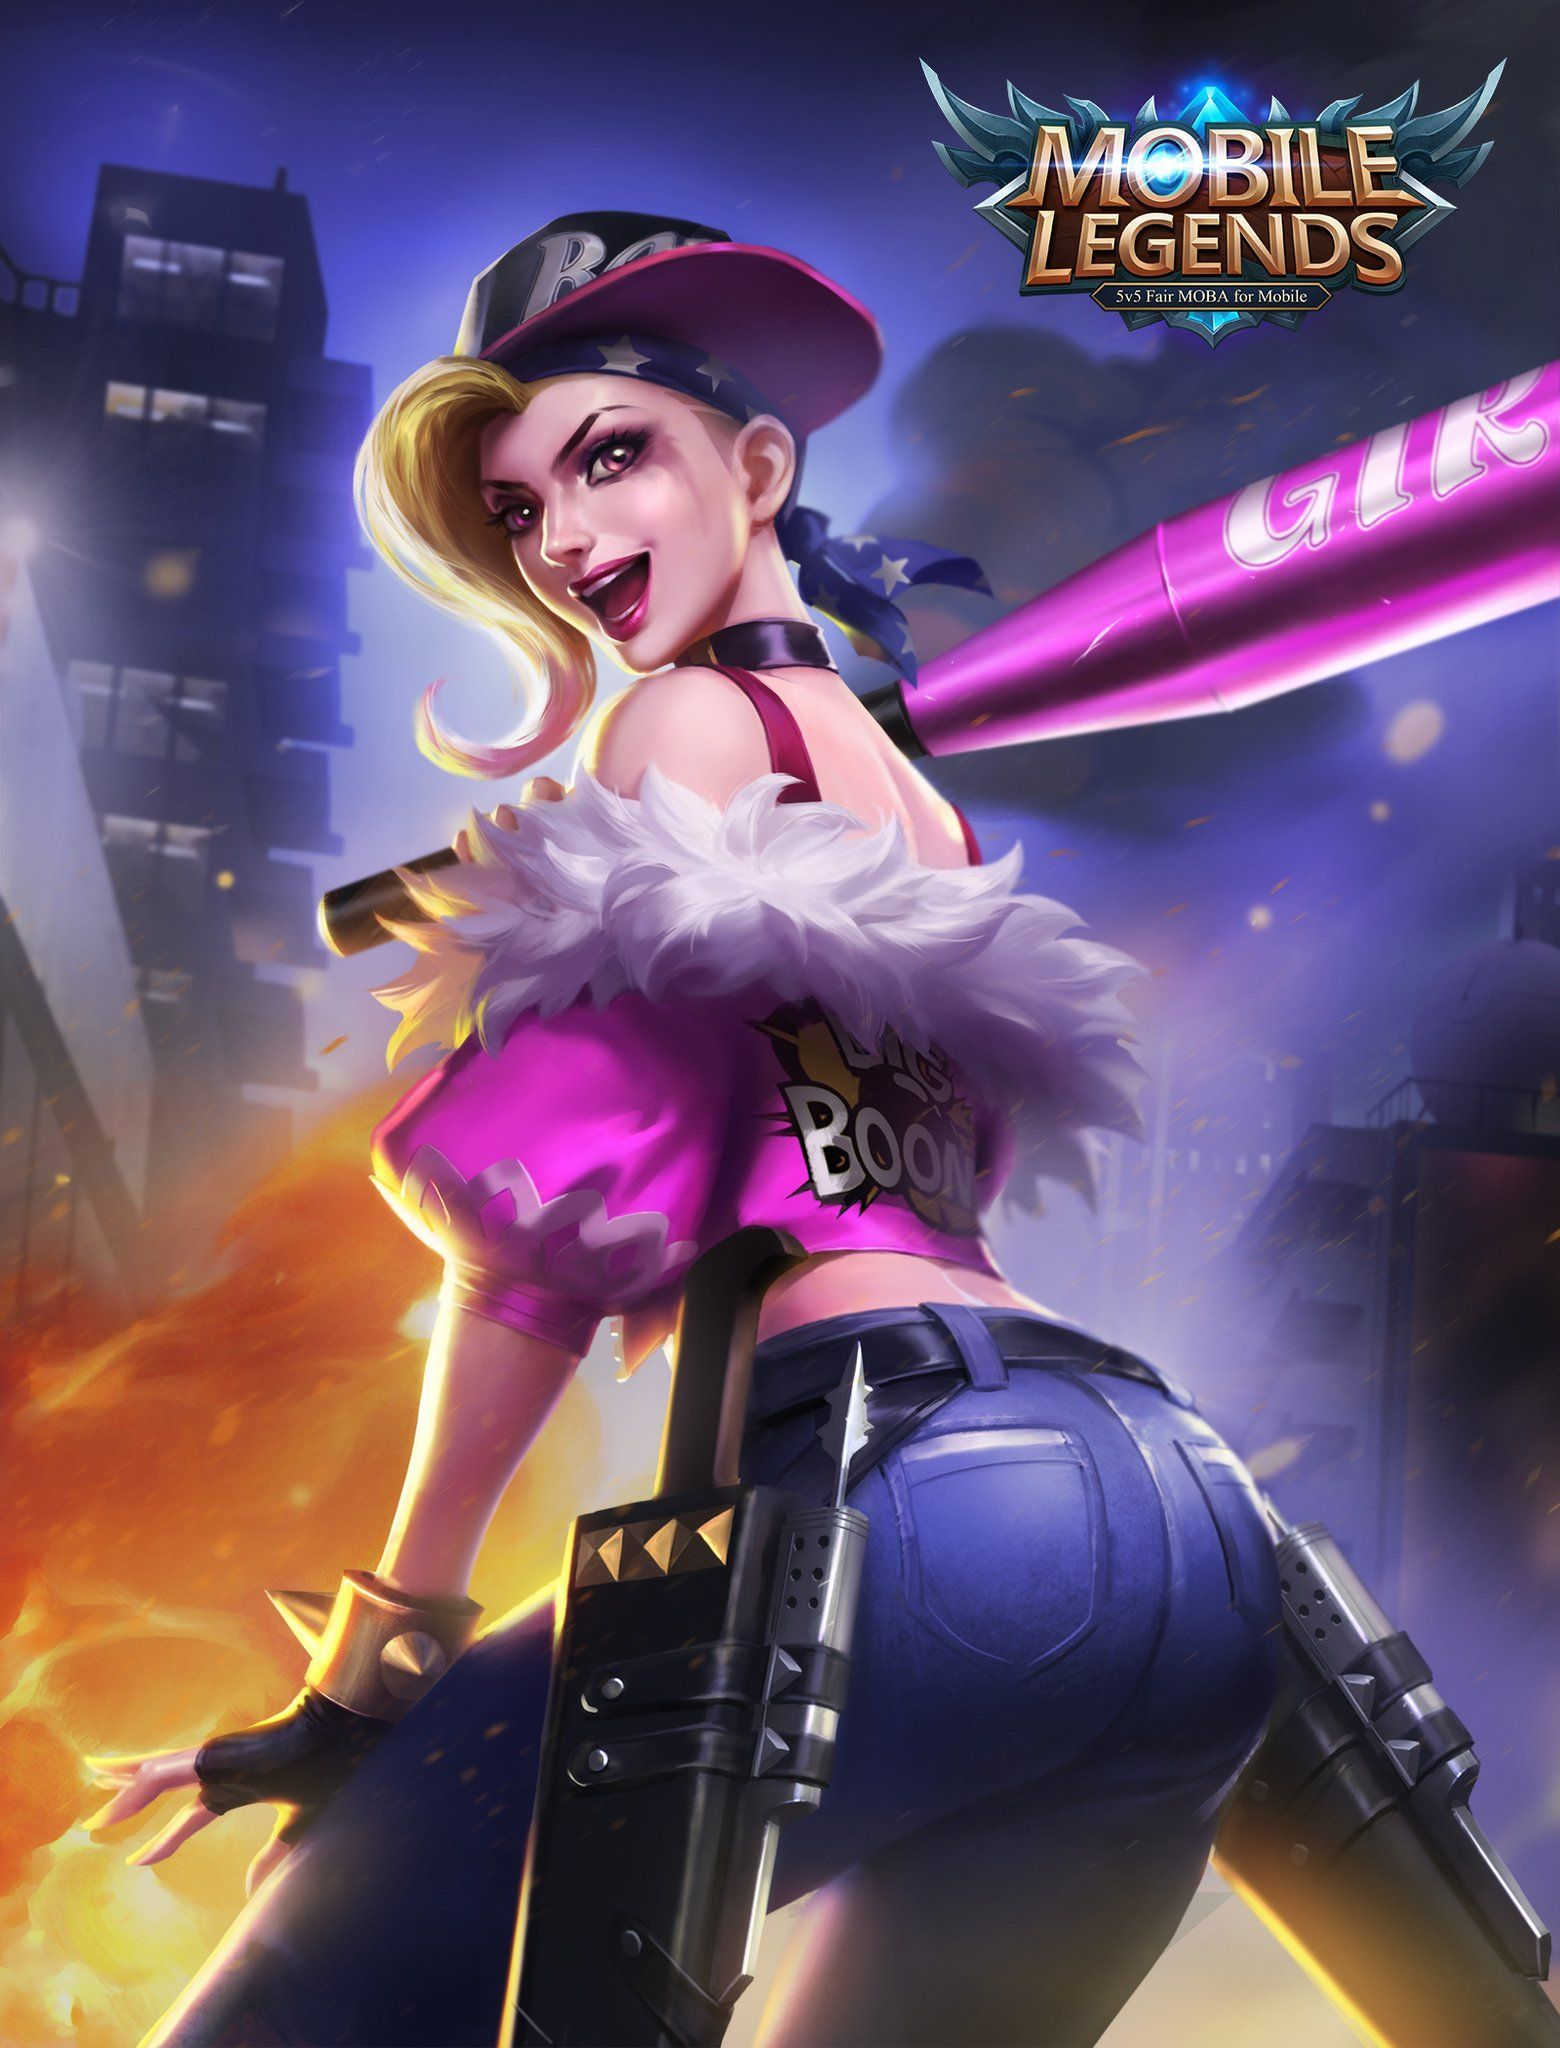 Ini  Wallpaper Hd Mobile Legends Terbaru